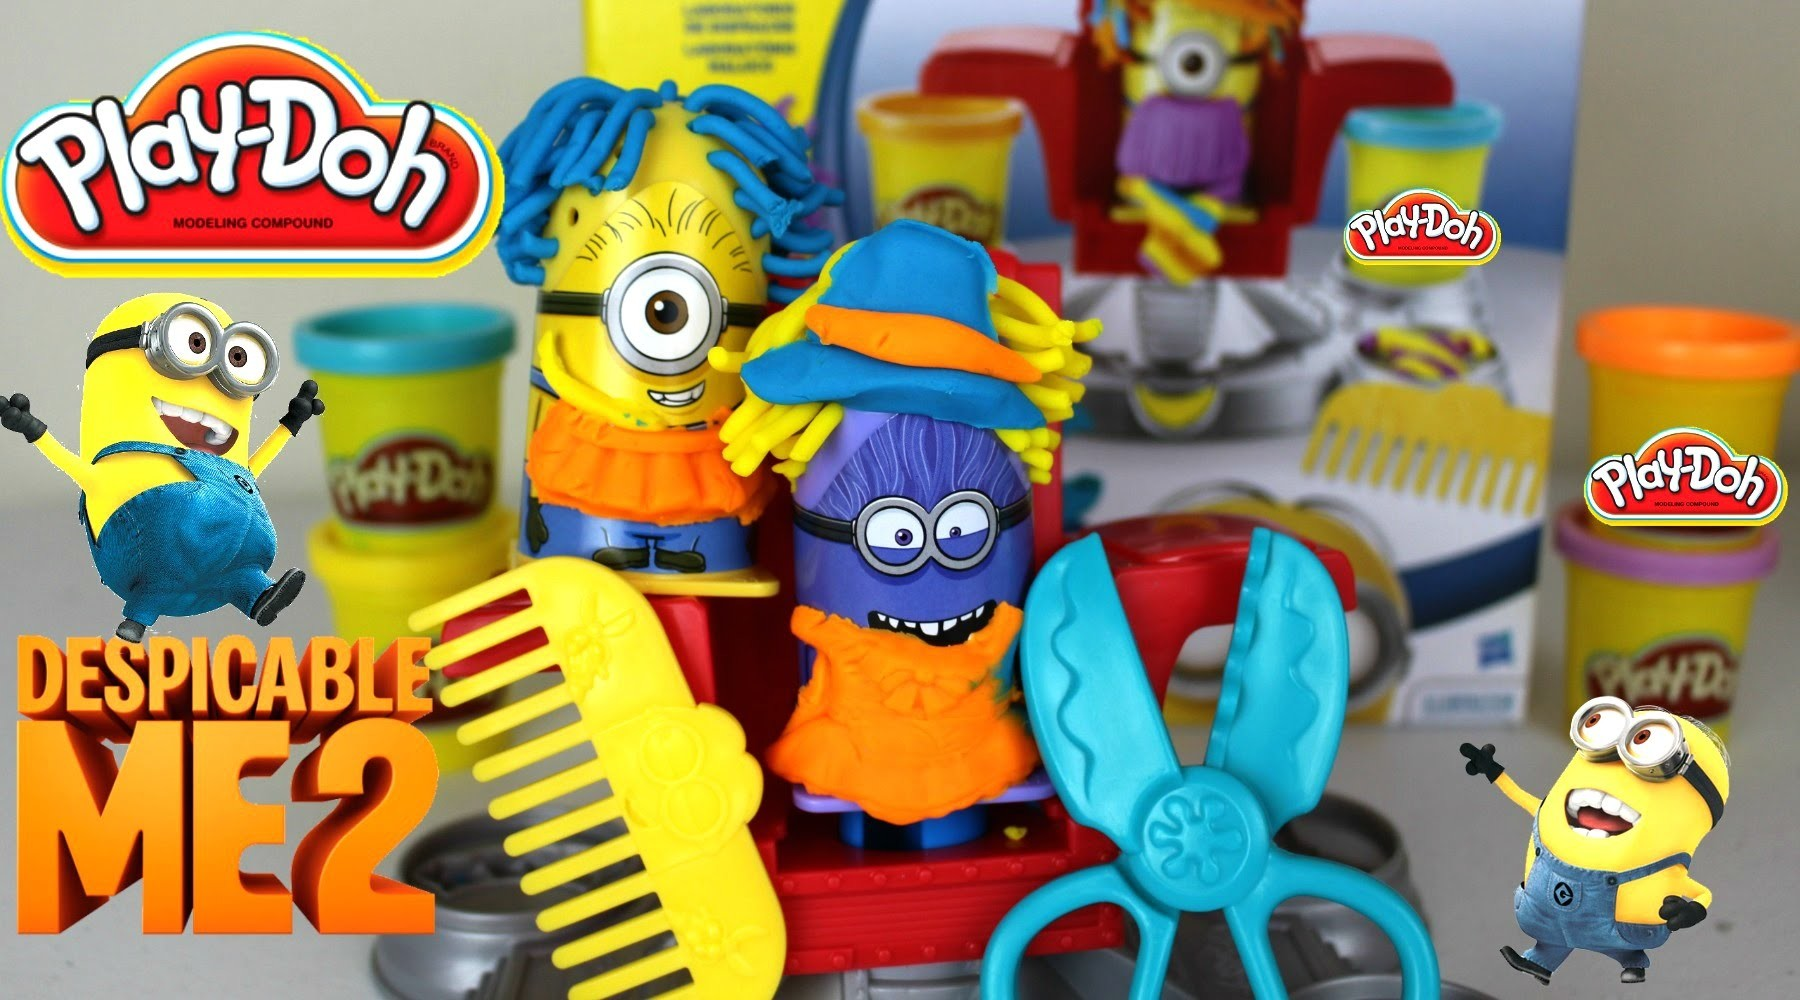 Plastilina Play Doh Despicable Me Minion Disguise | Juguetes Play Doh en Español